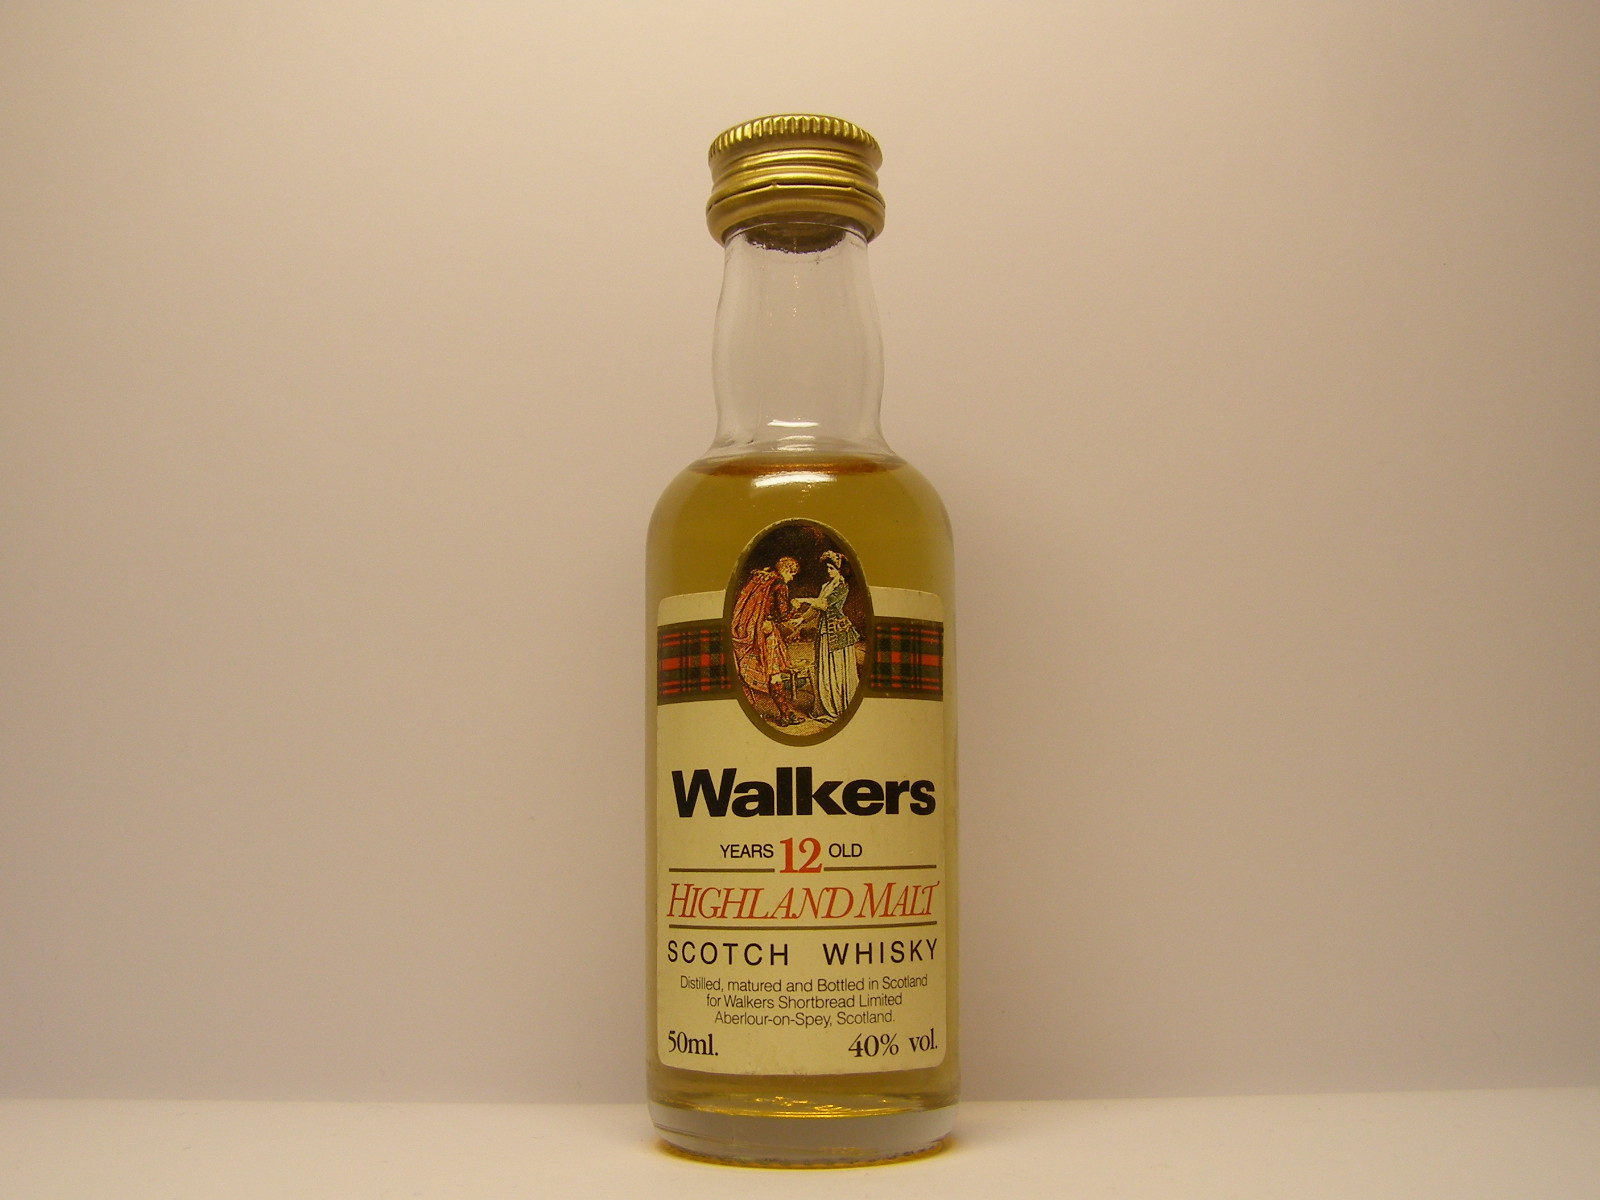 WALKERS HMSW 12yo 50ml. 40%vol.